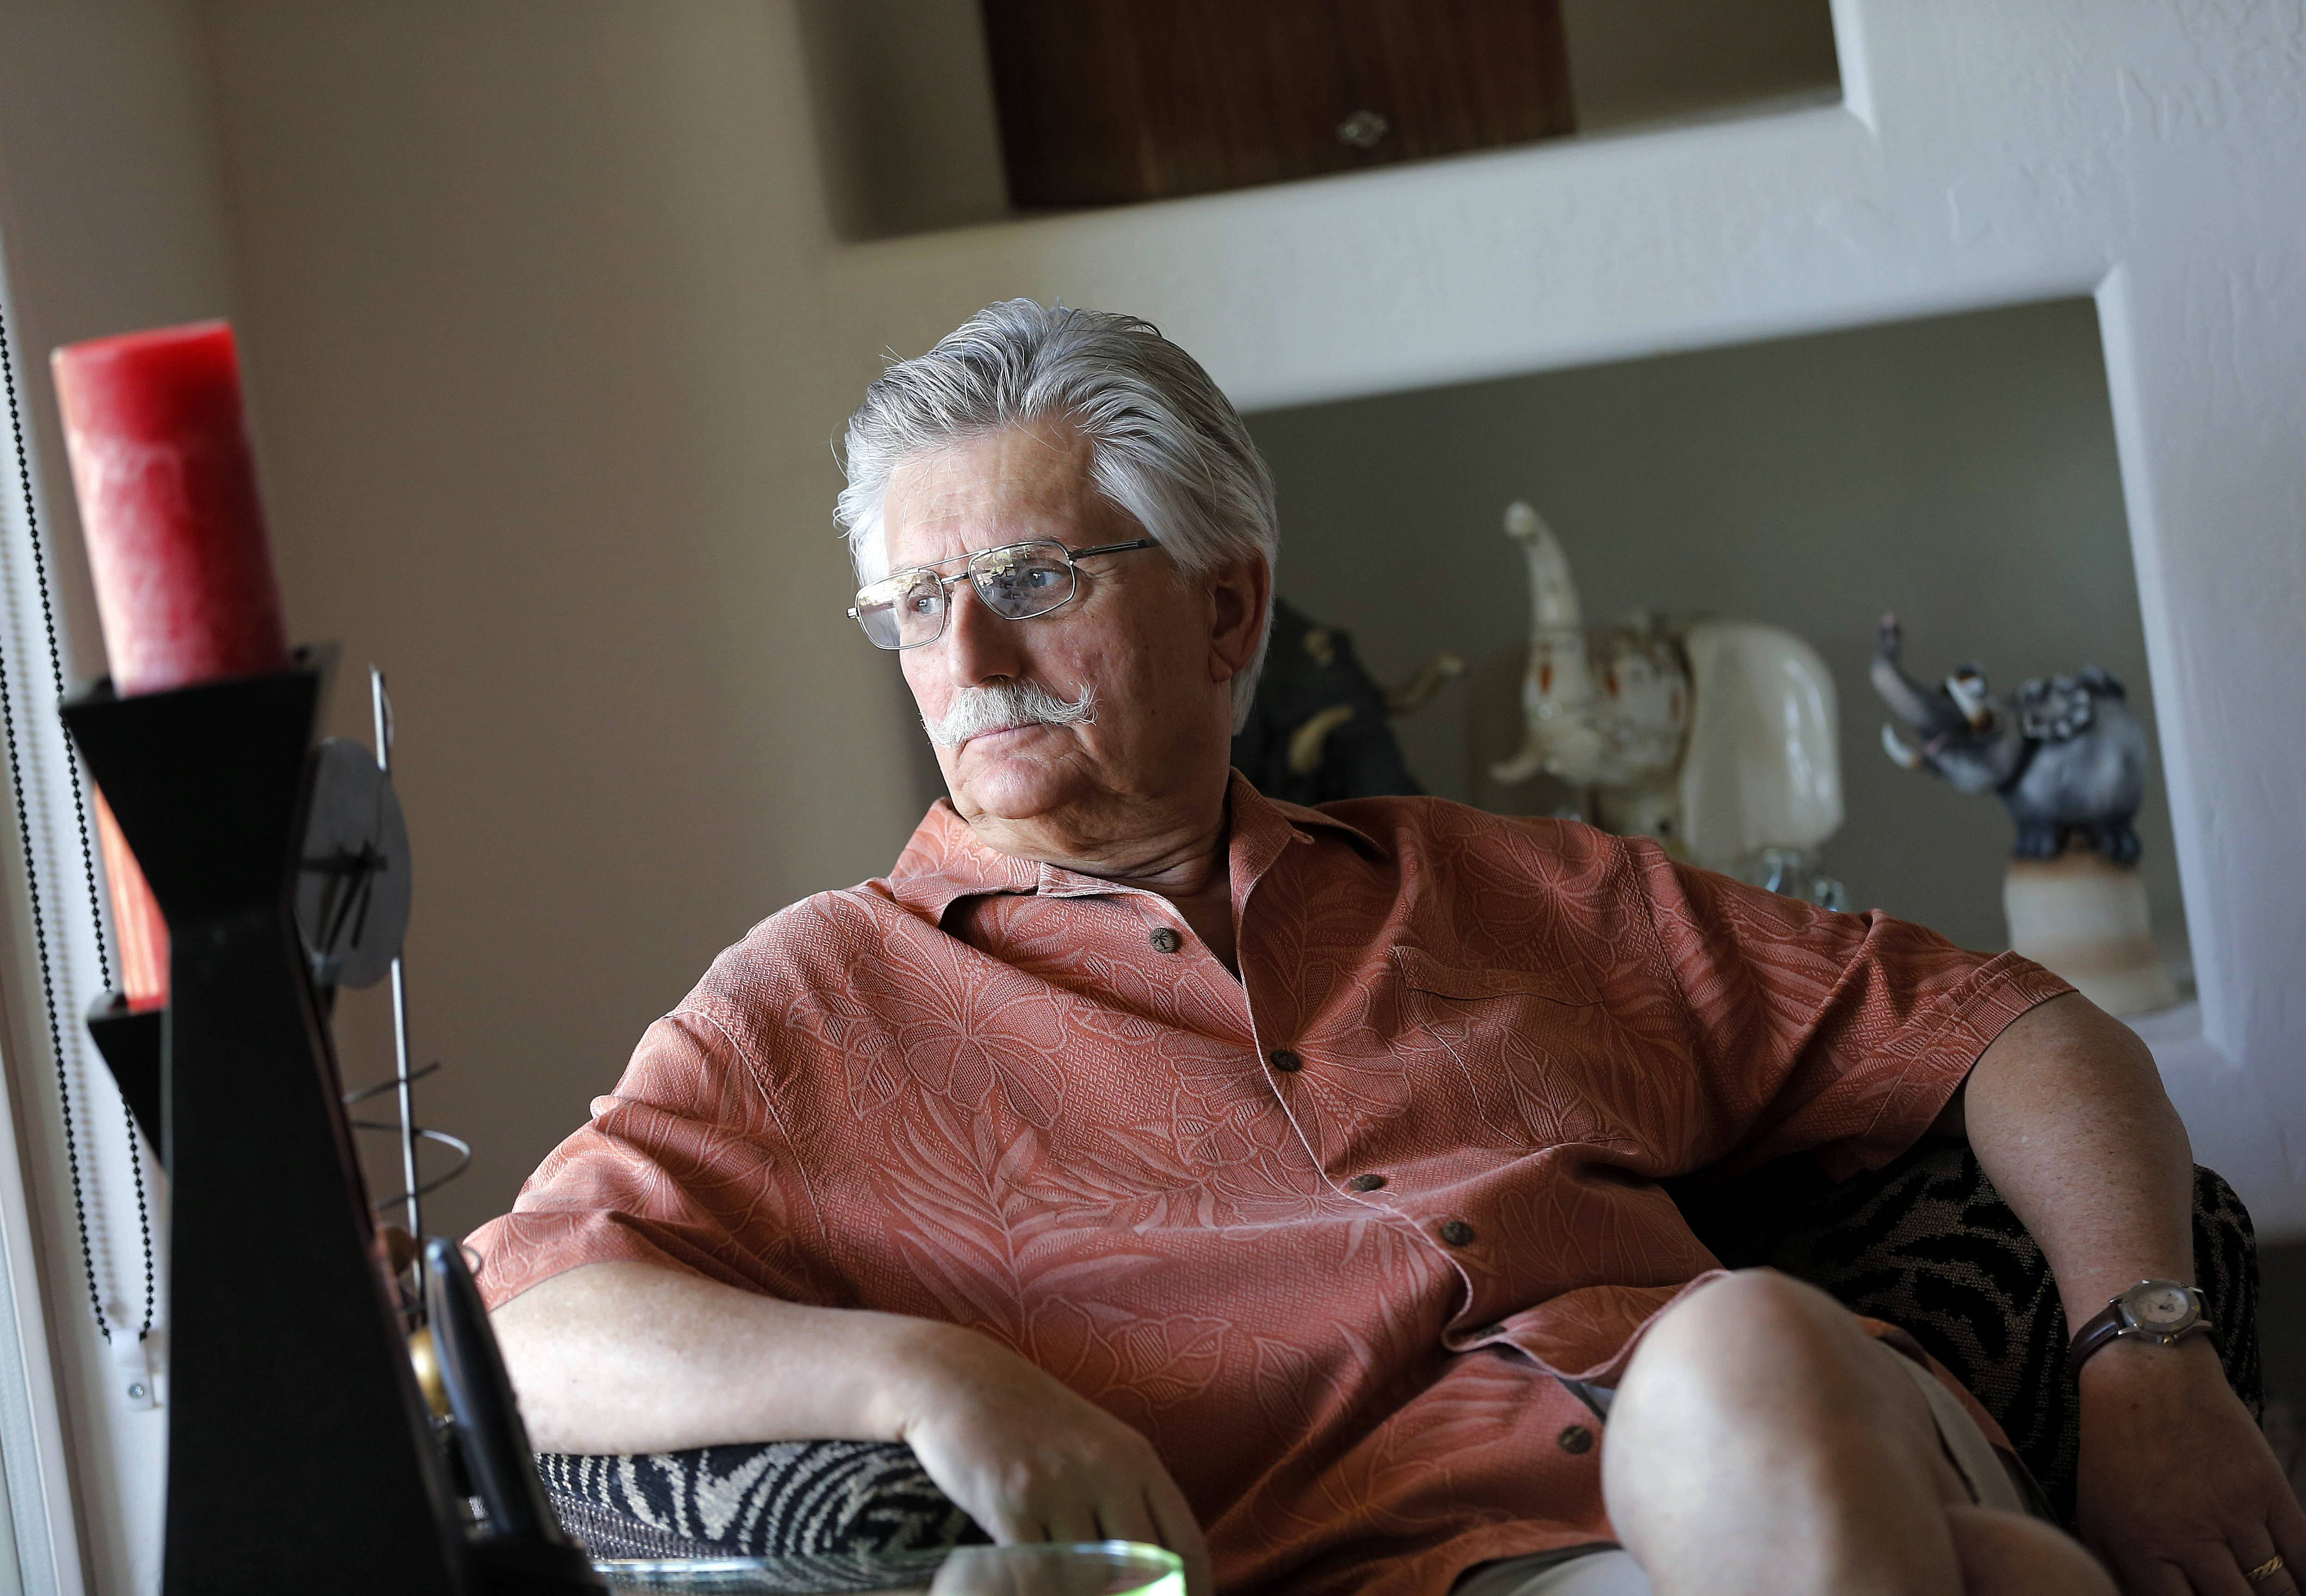 Fred Goldman, father of murder victim Ronald Goldman, has not rested since a jury acquitted O.J. Simpson 20 years ago. Goldman and the family of Simpson's slain ex-wife took the former football hero to civil court, got a $33.5 million judgment and Goldman then seized anything that could help pay that award.